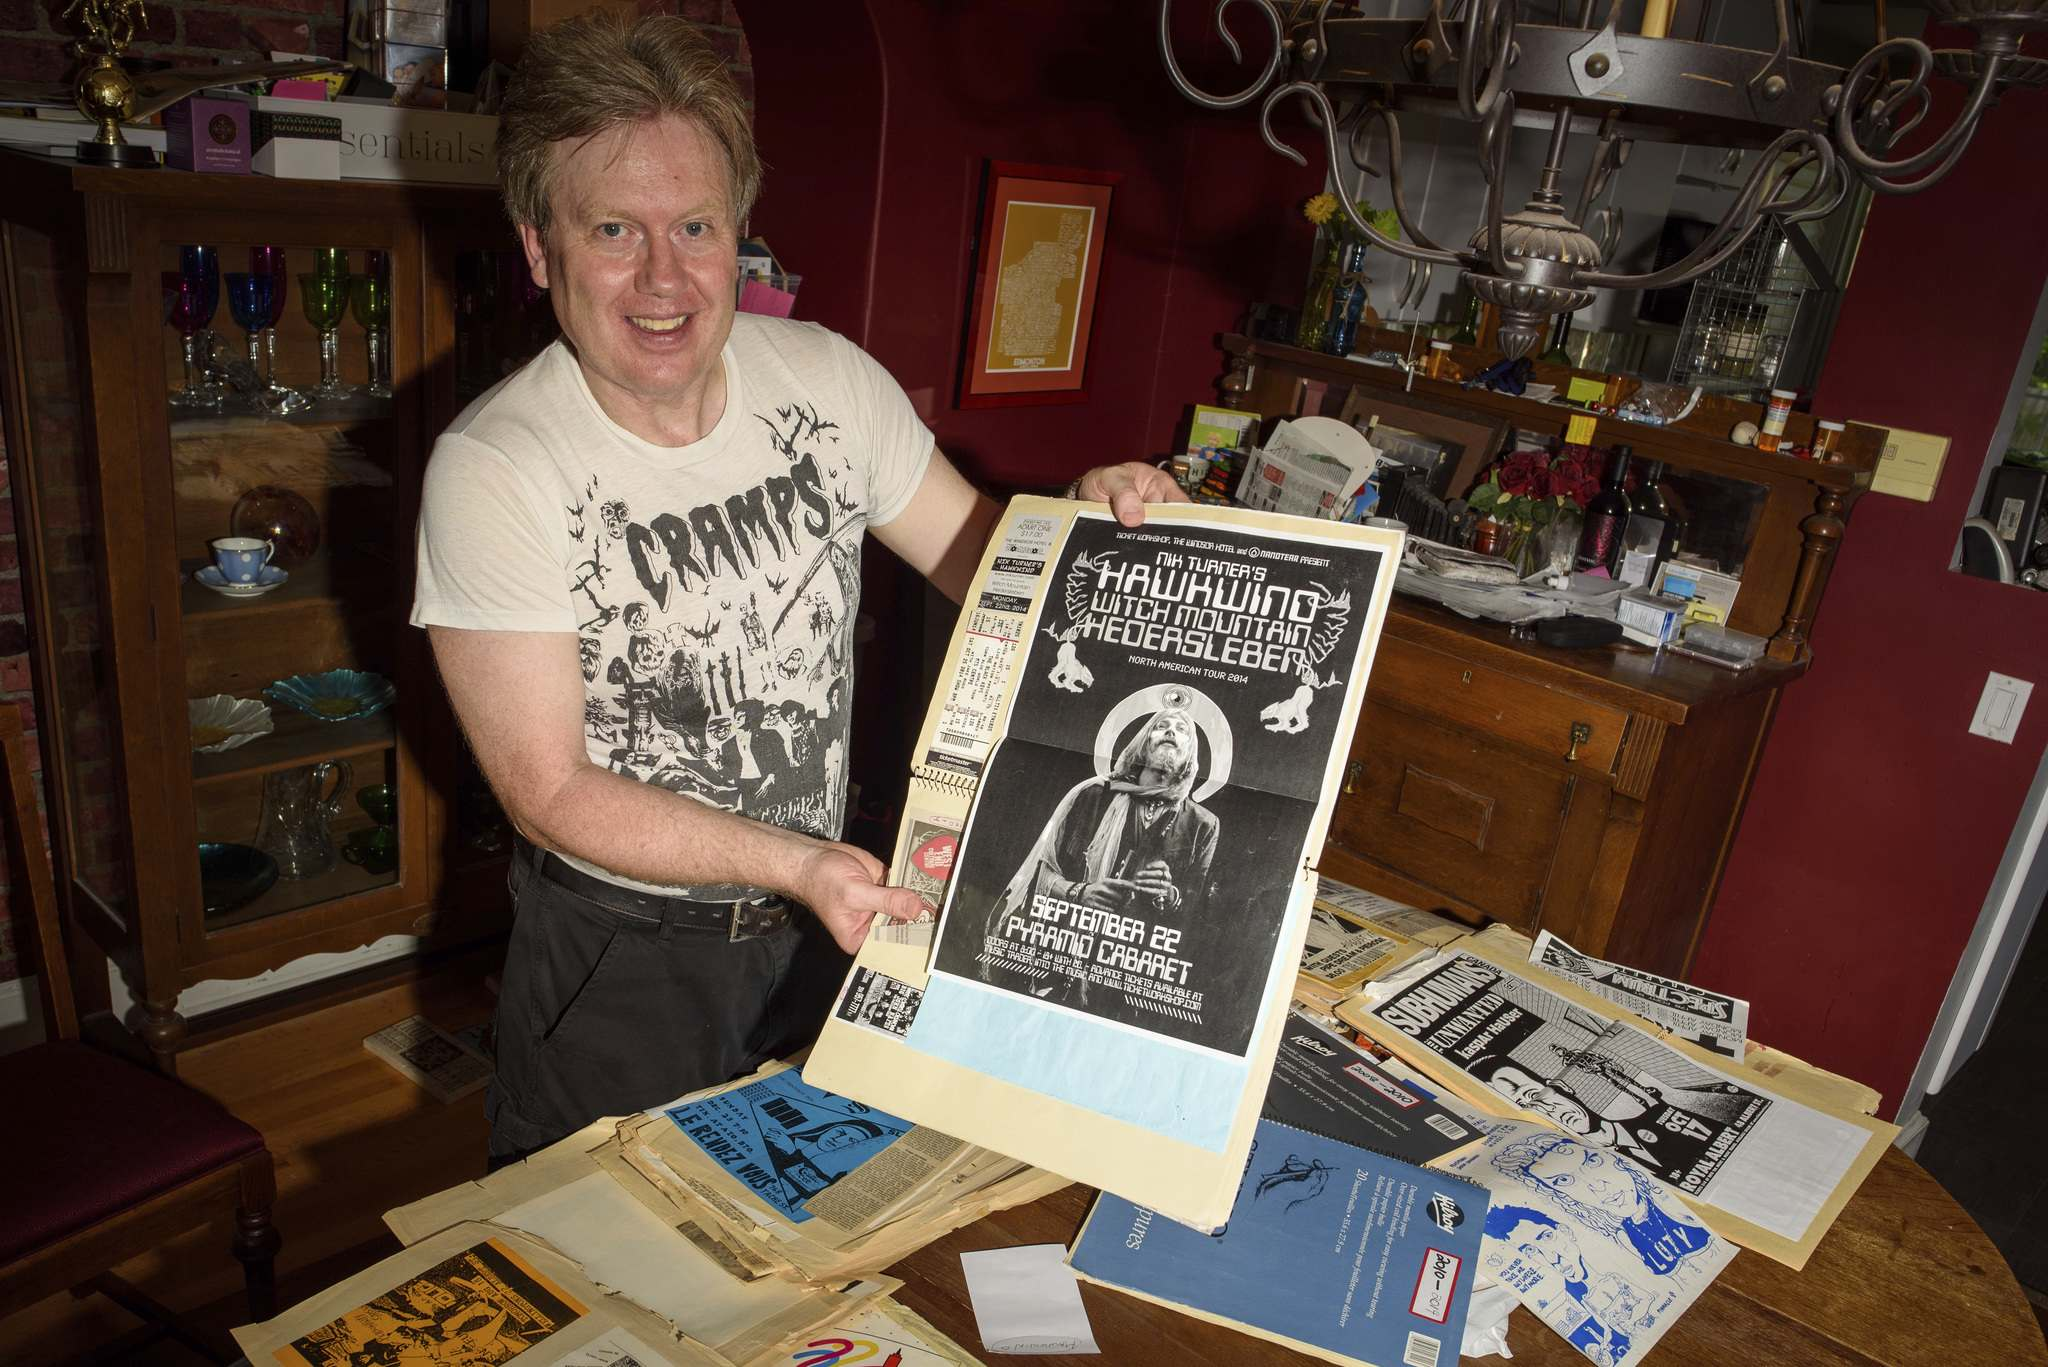 JESSE BOILY / WINNIPEG FREE PRESS</p><p>Glen Morris looks through ticket stubs, newspaper clippings, handwritten set lists and posters he's collected since 1976, creating his own personal history of Winnipeg's music scene.</p>